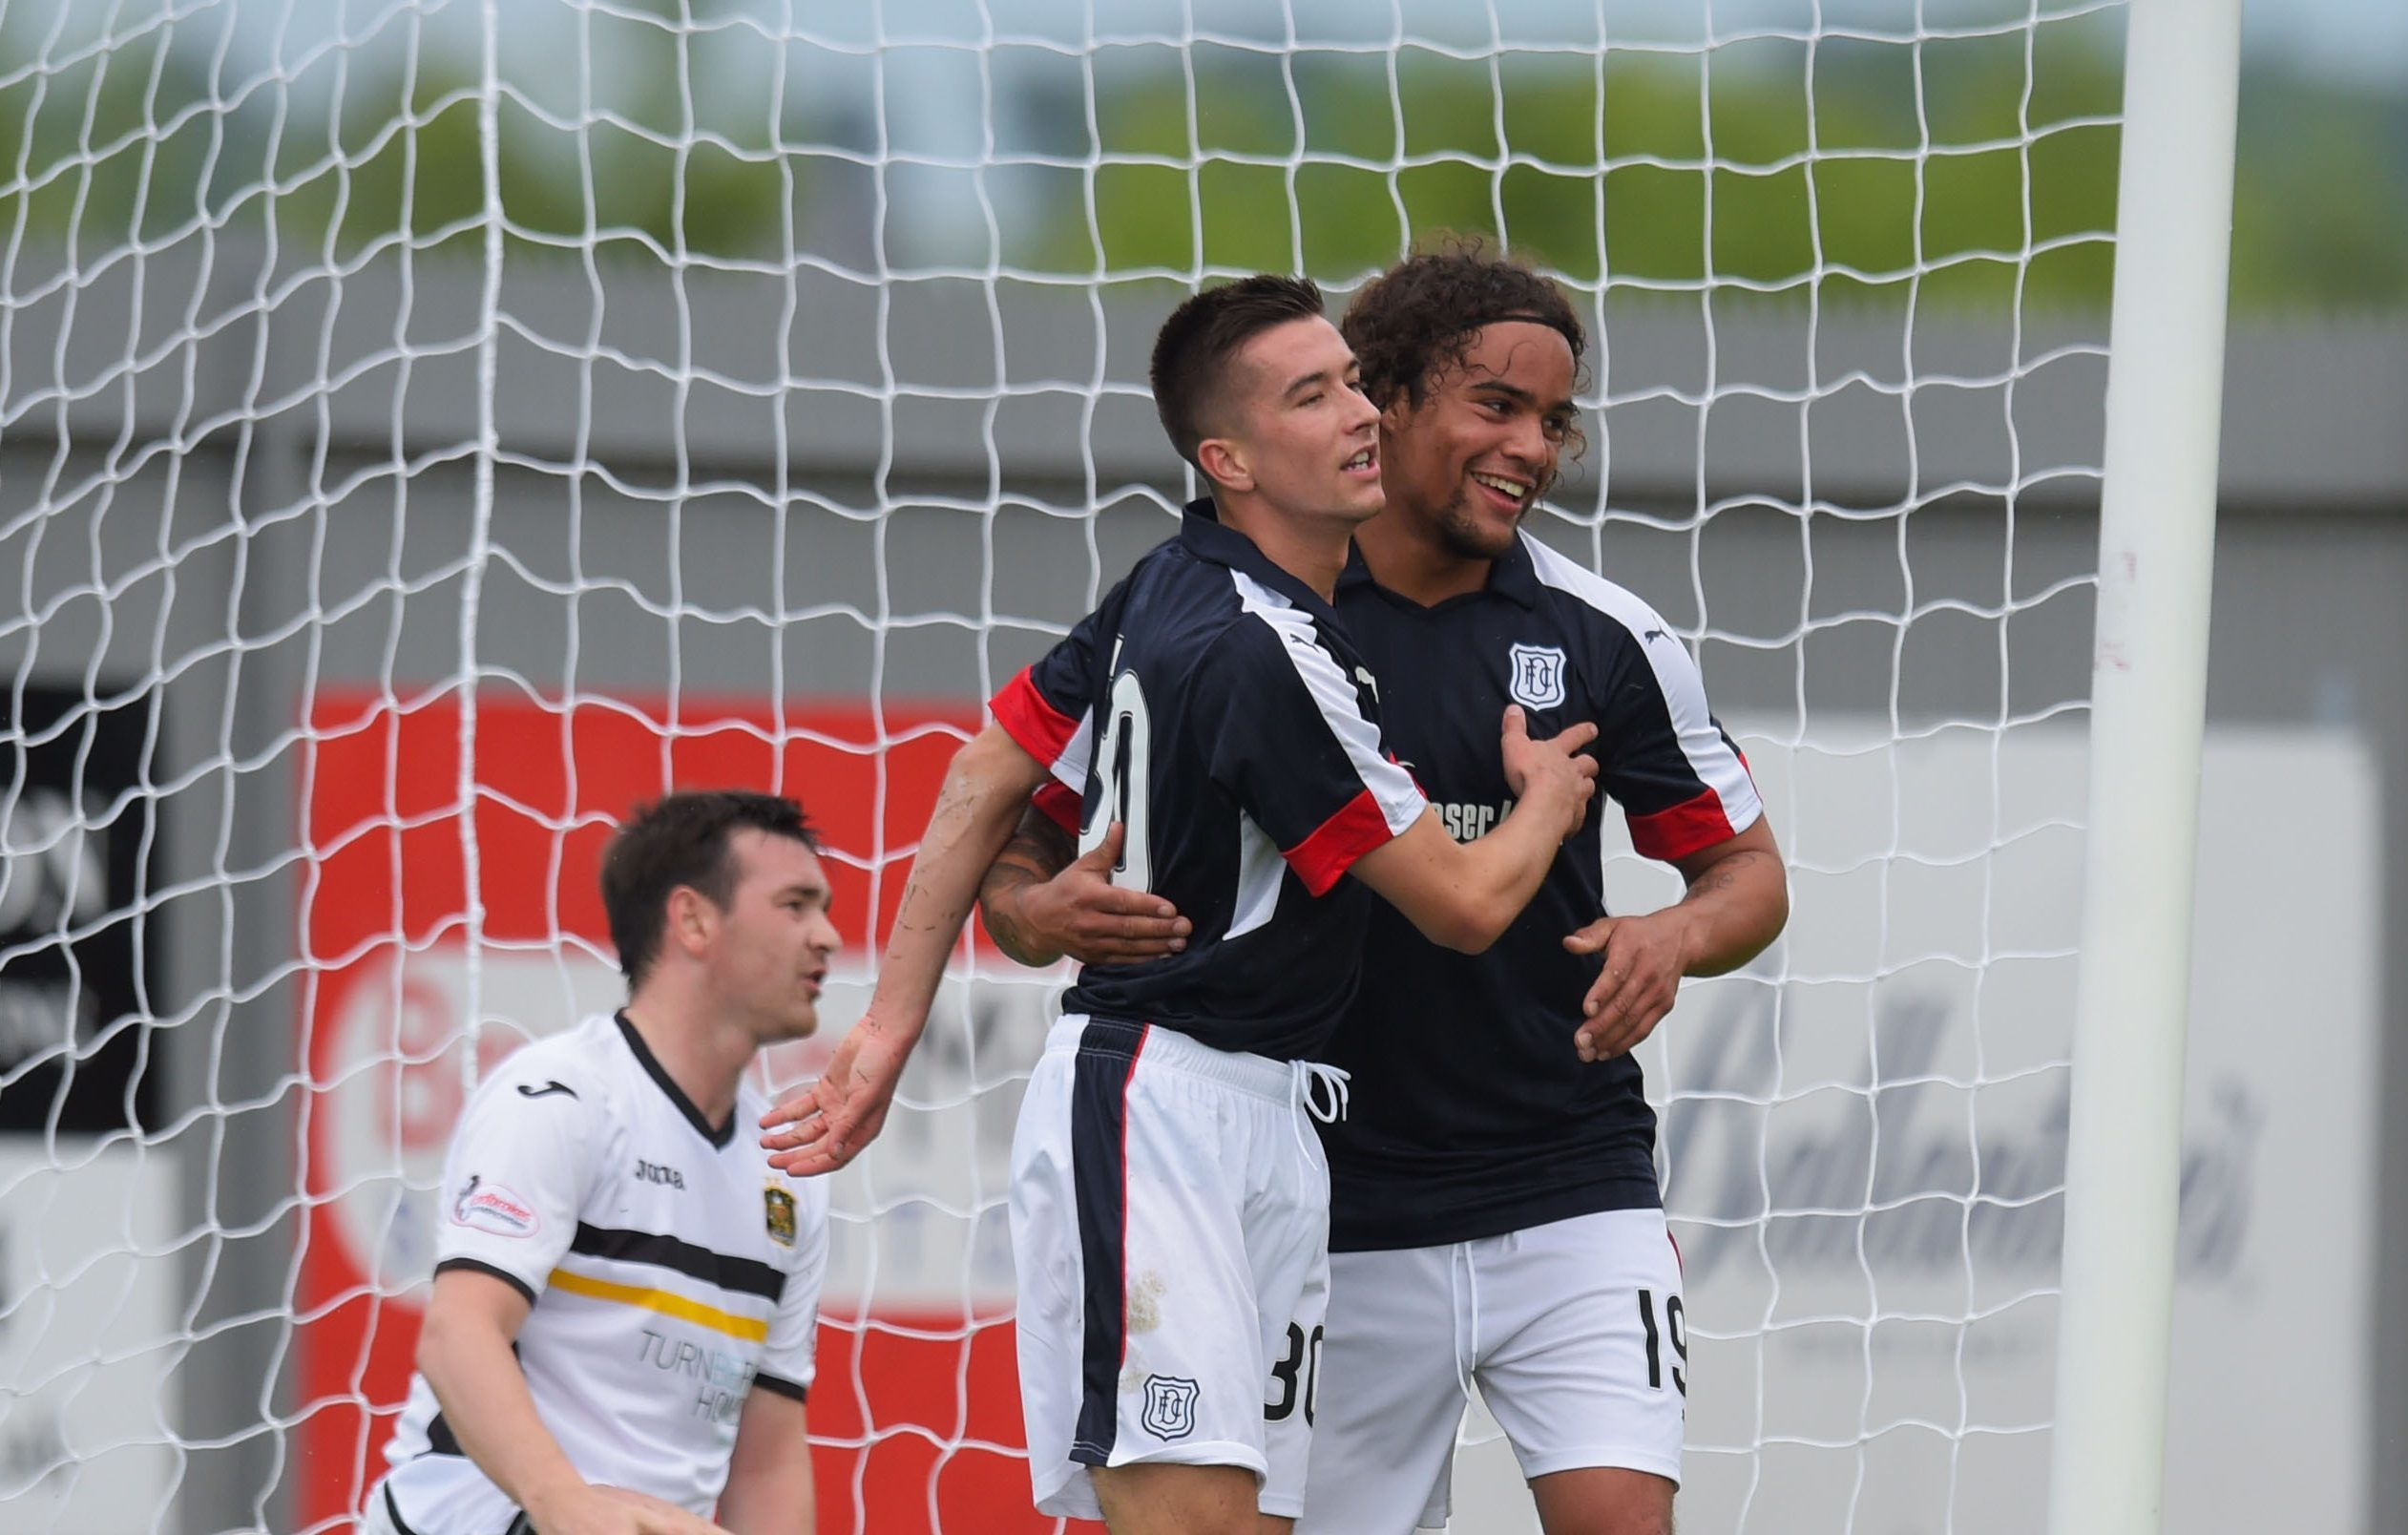 Dundee's Cammy Kerr celebrates with Yordi Teijsse after he scores his side's opener.